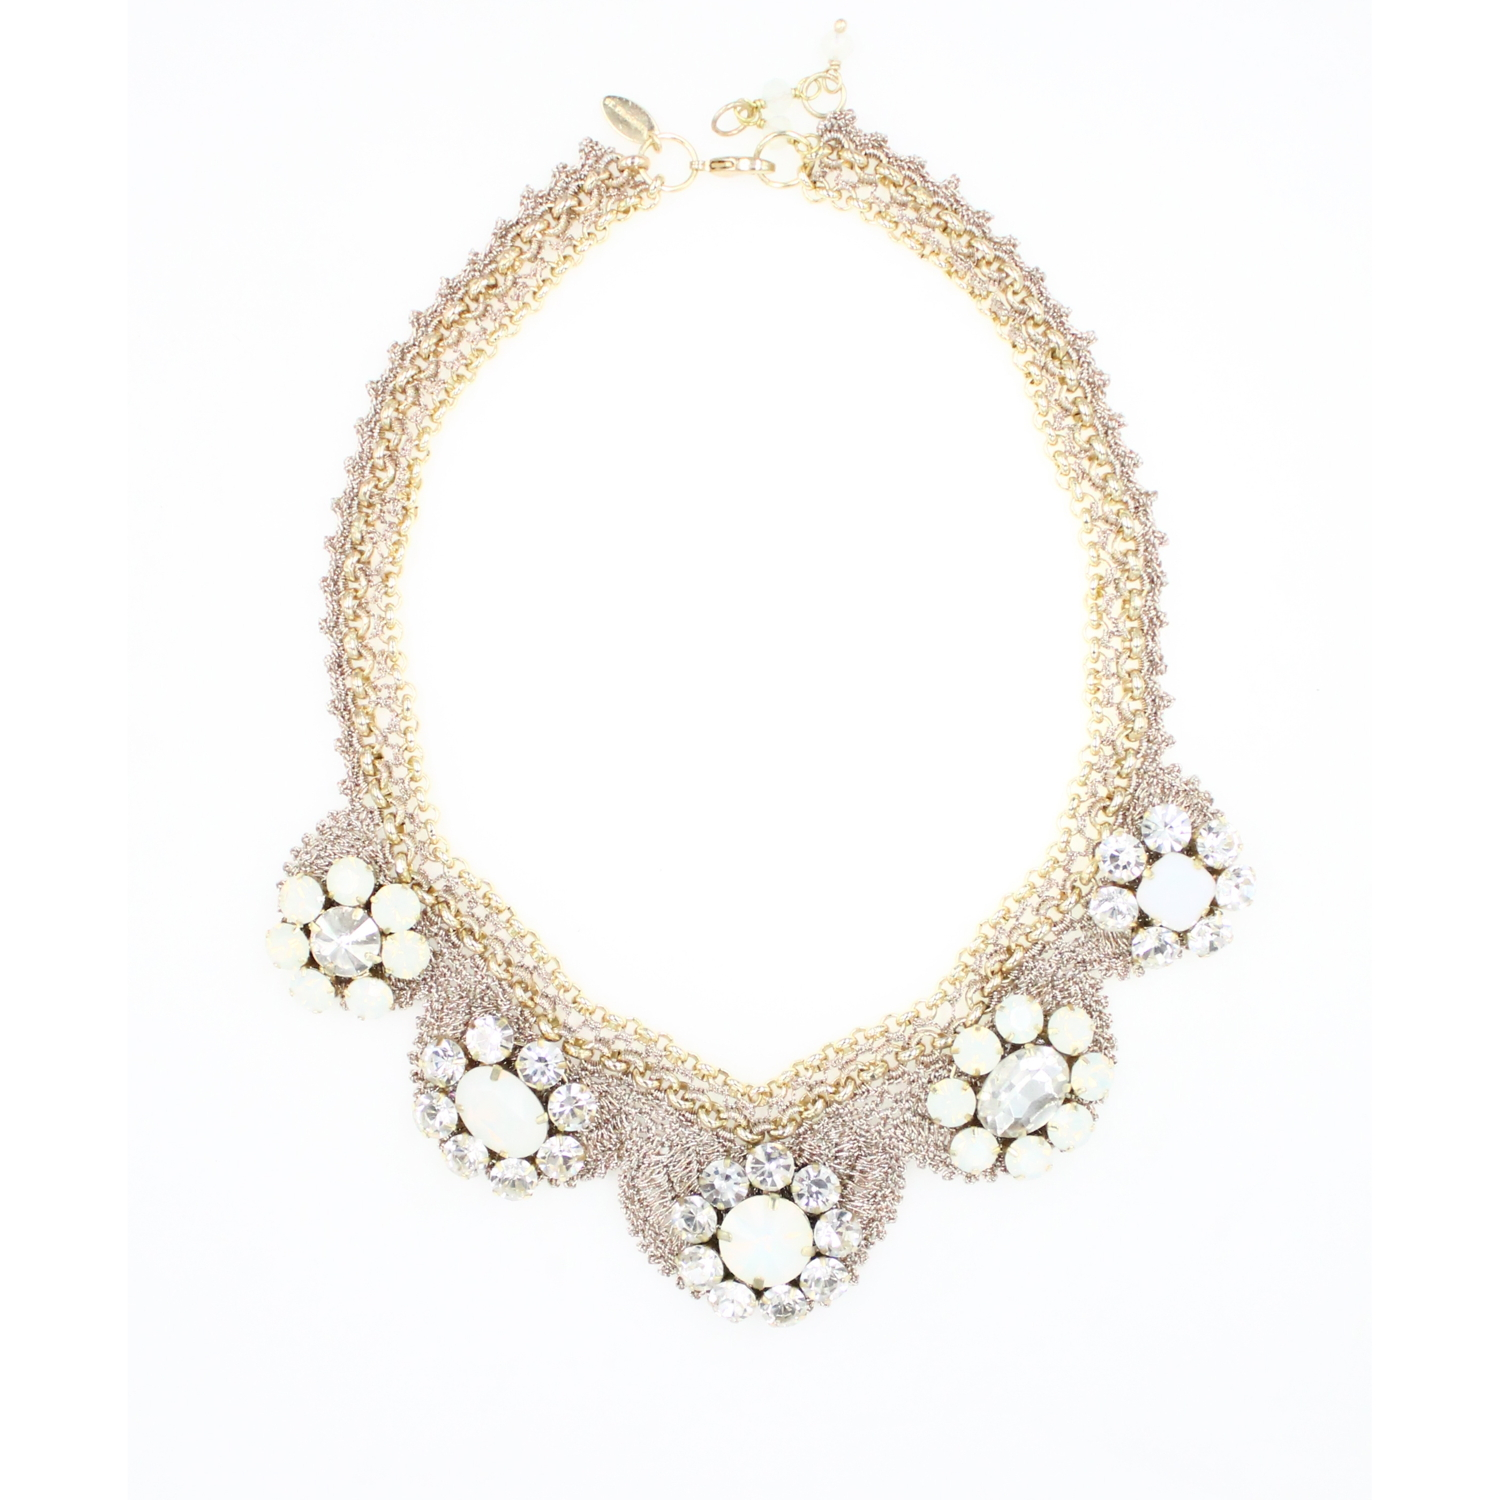 Frangipani Daisy Flower Bib Crochet Necklace - Clear Opal